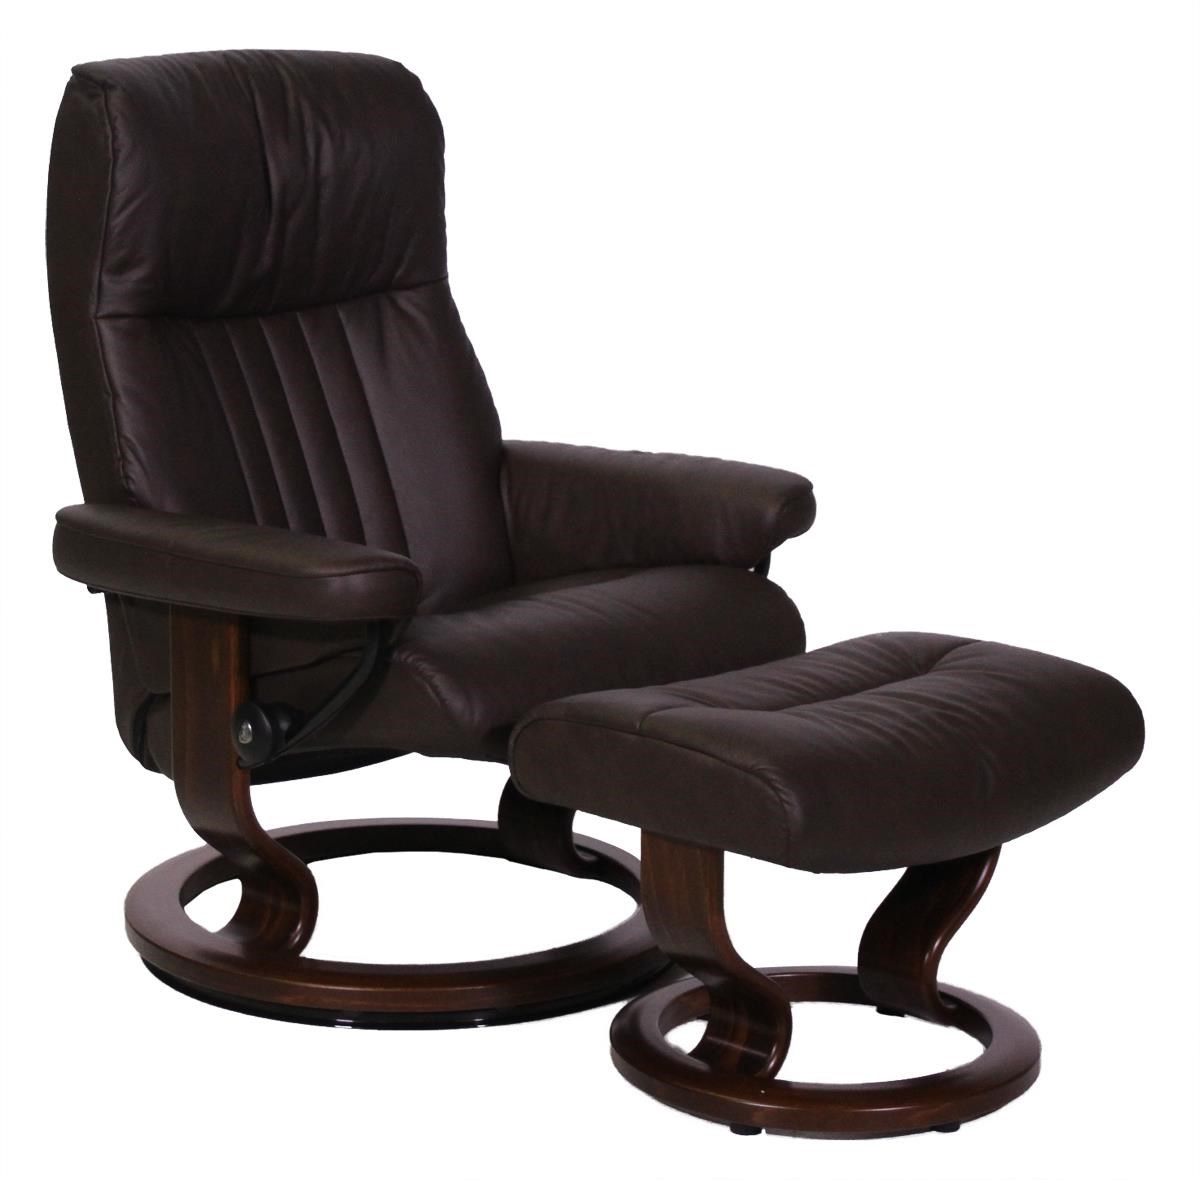 Stressless Sessel Bliss Stressless Chair Replacement Parts Stressless Chair Voyager